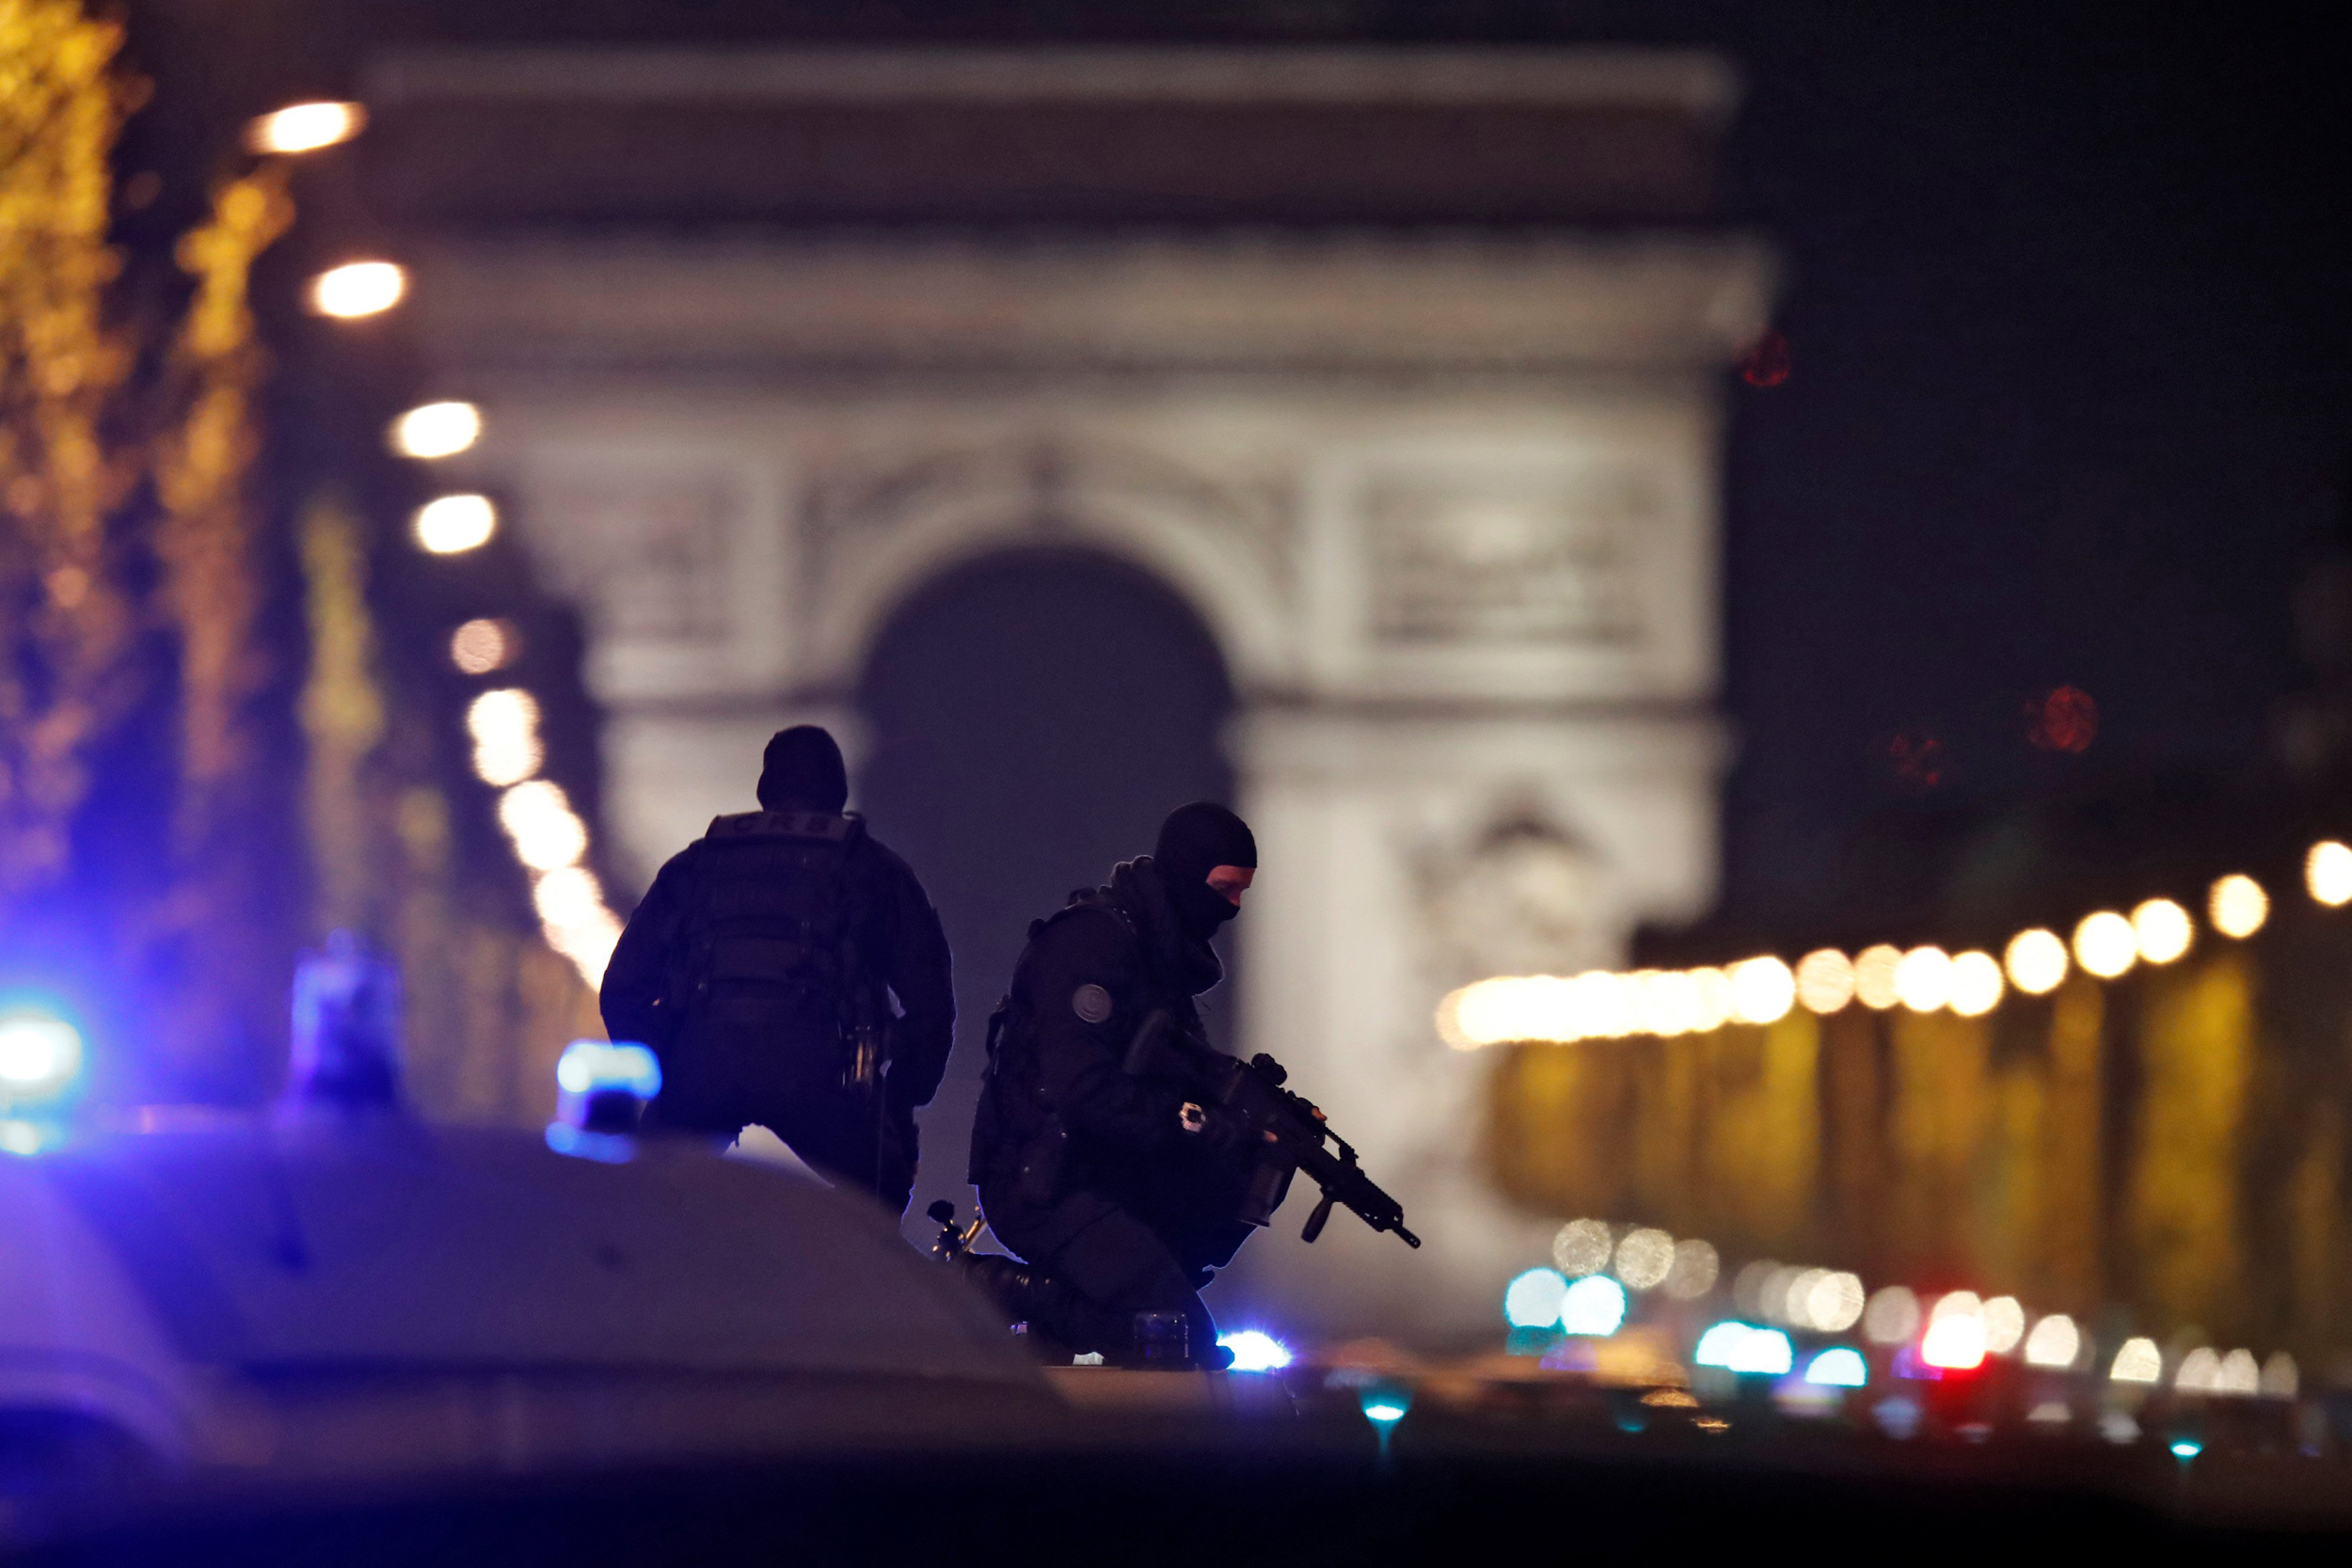 Officers-Shot,-One-Fatally,-on-Paris'-Champs-Elysees